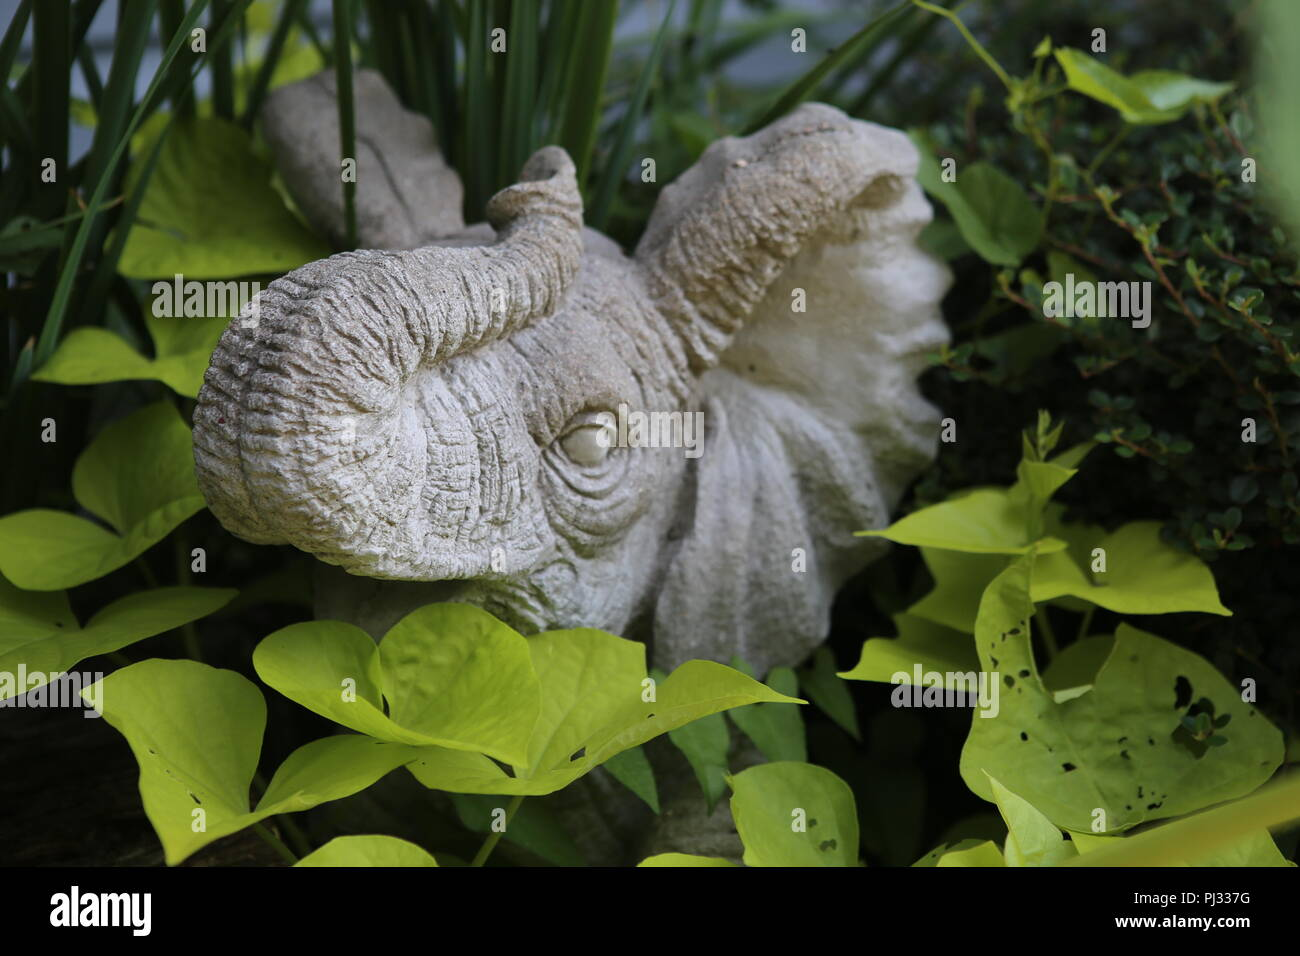 stone statue of an elephant in outdoor garden - Stock Image